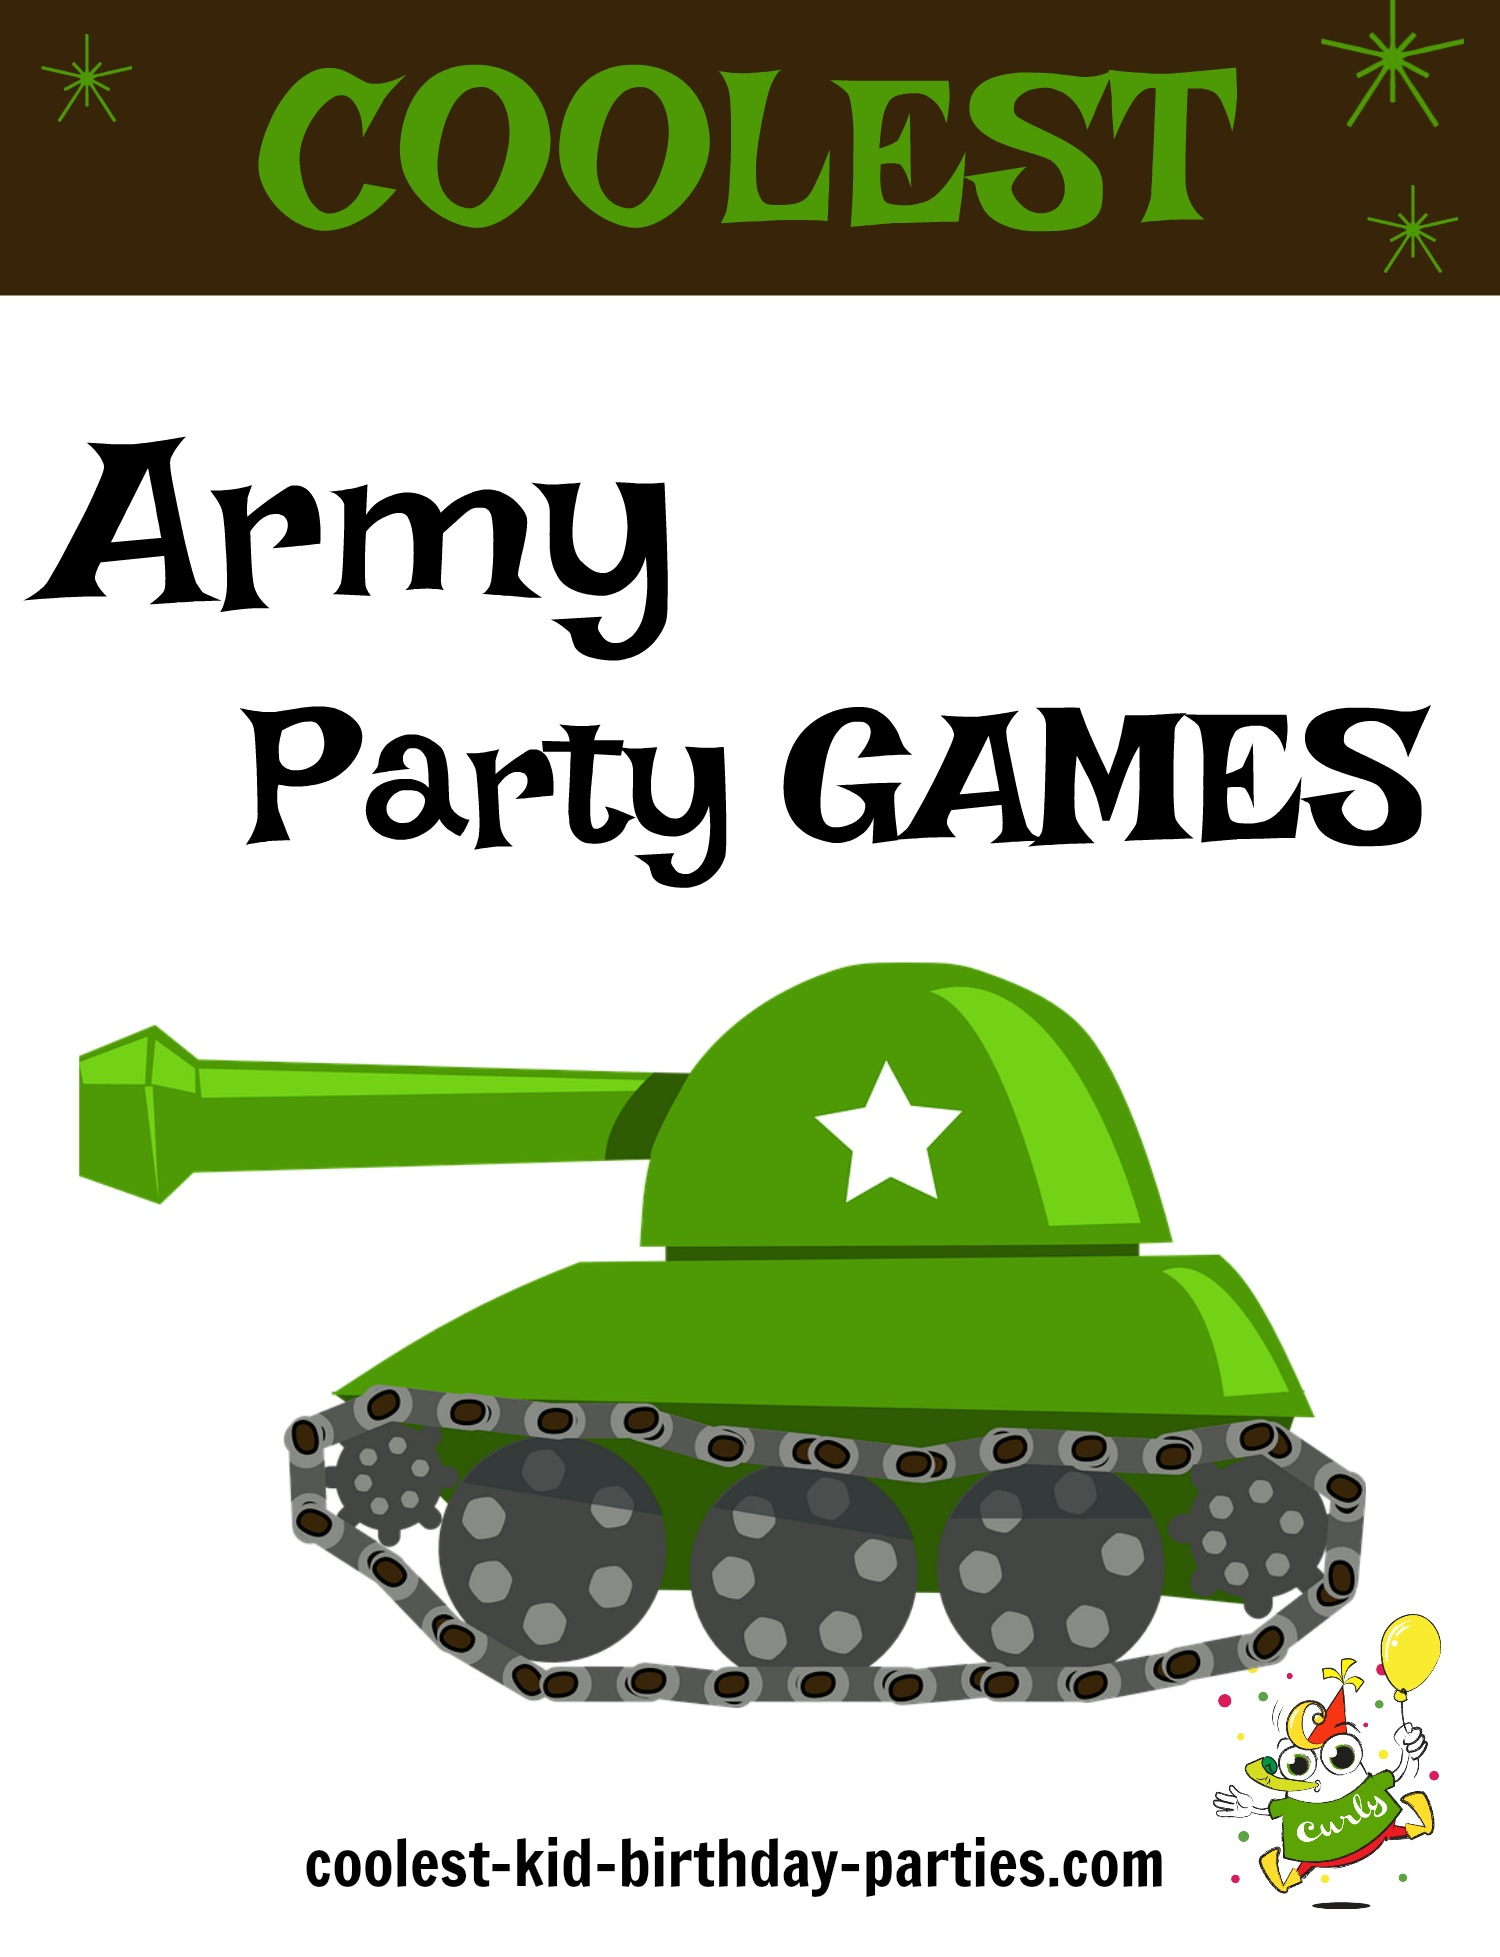 Coolest Birthday Party Games For An Army Theme Party